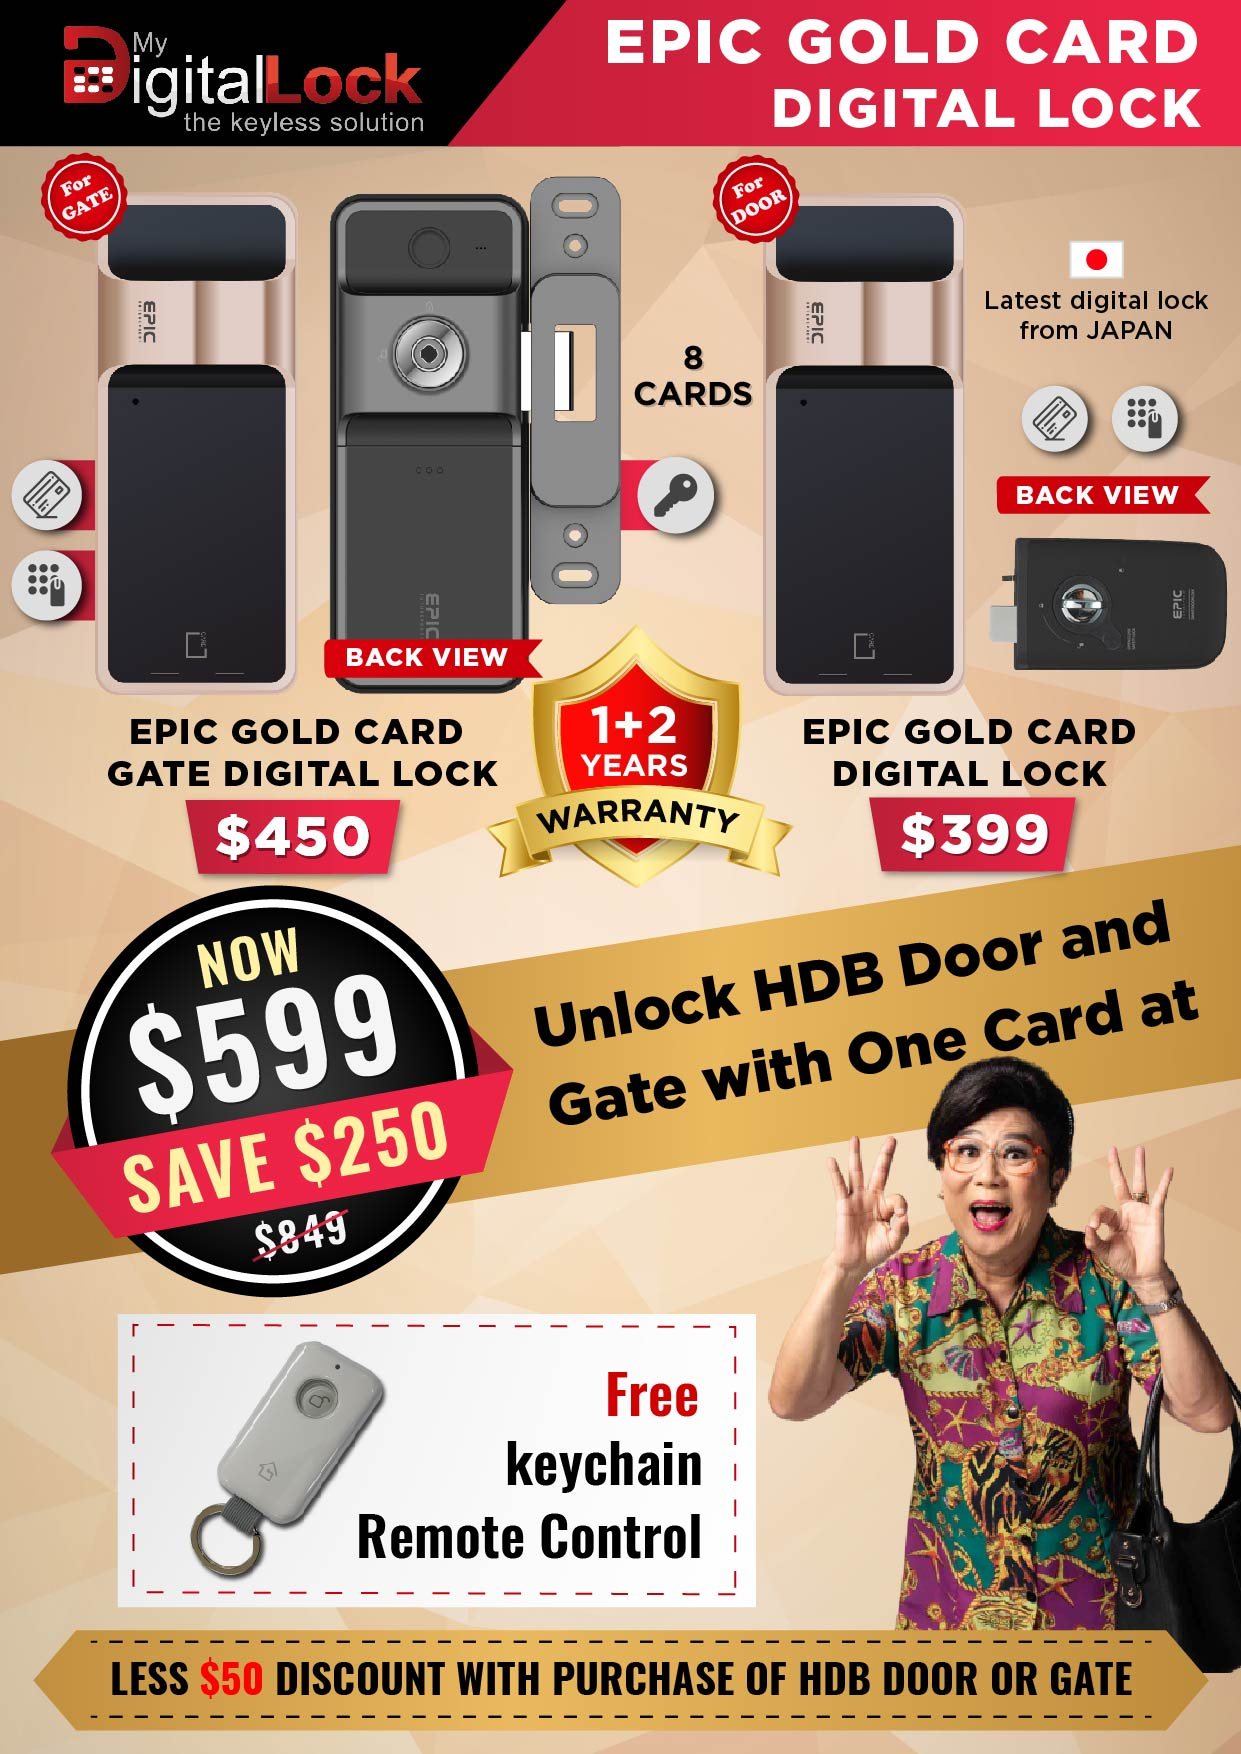 EPIC Gold Card Gate and Door Digital Lock